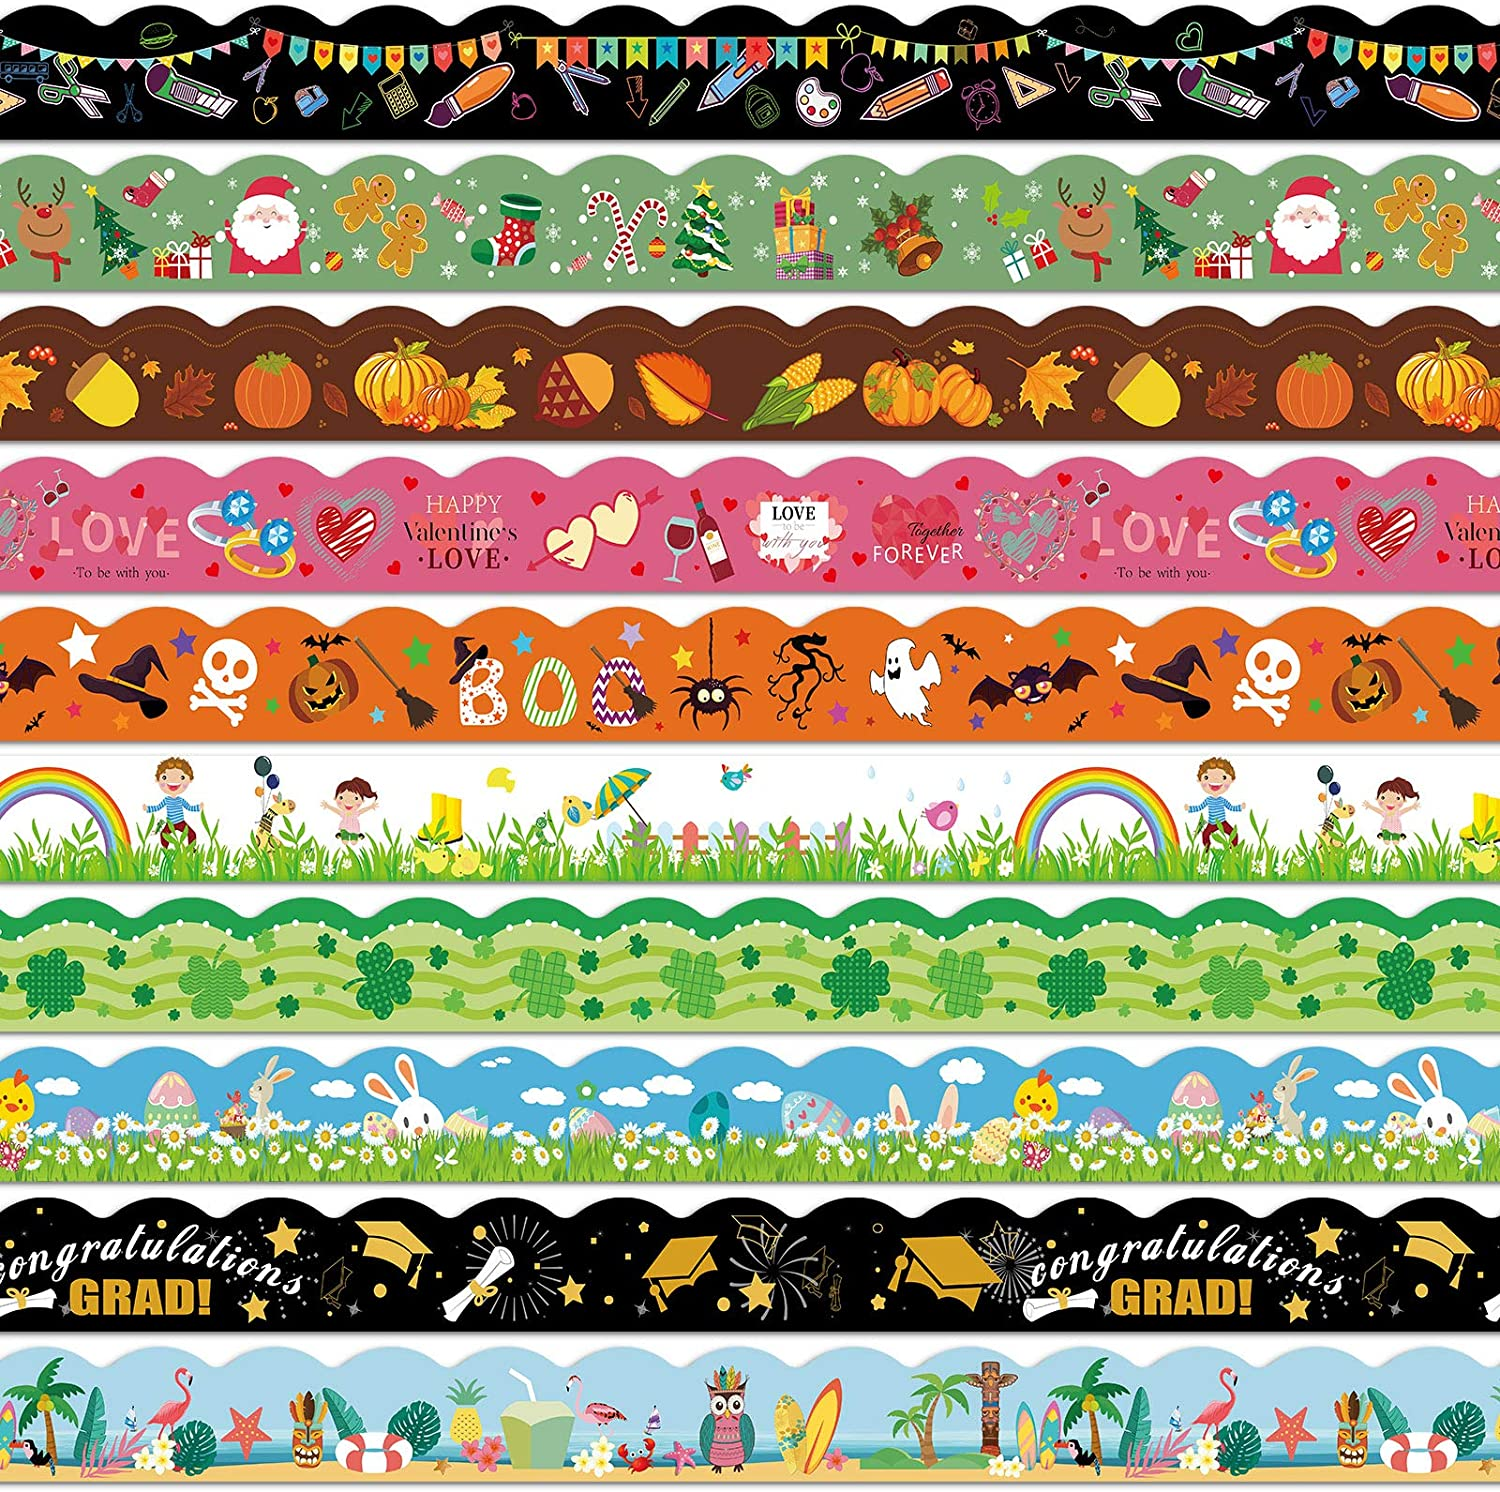 10 Pieces Halloween Thanksgiving Christmas Bulletin Board Decorative Trim Border Trim Bulletin Borders Stickers Self-Adhesive Blackboard Border for Classroom School Decoration